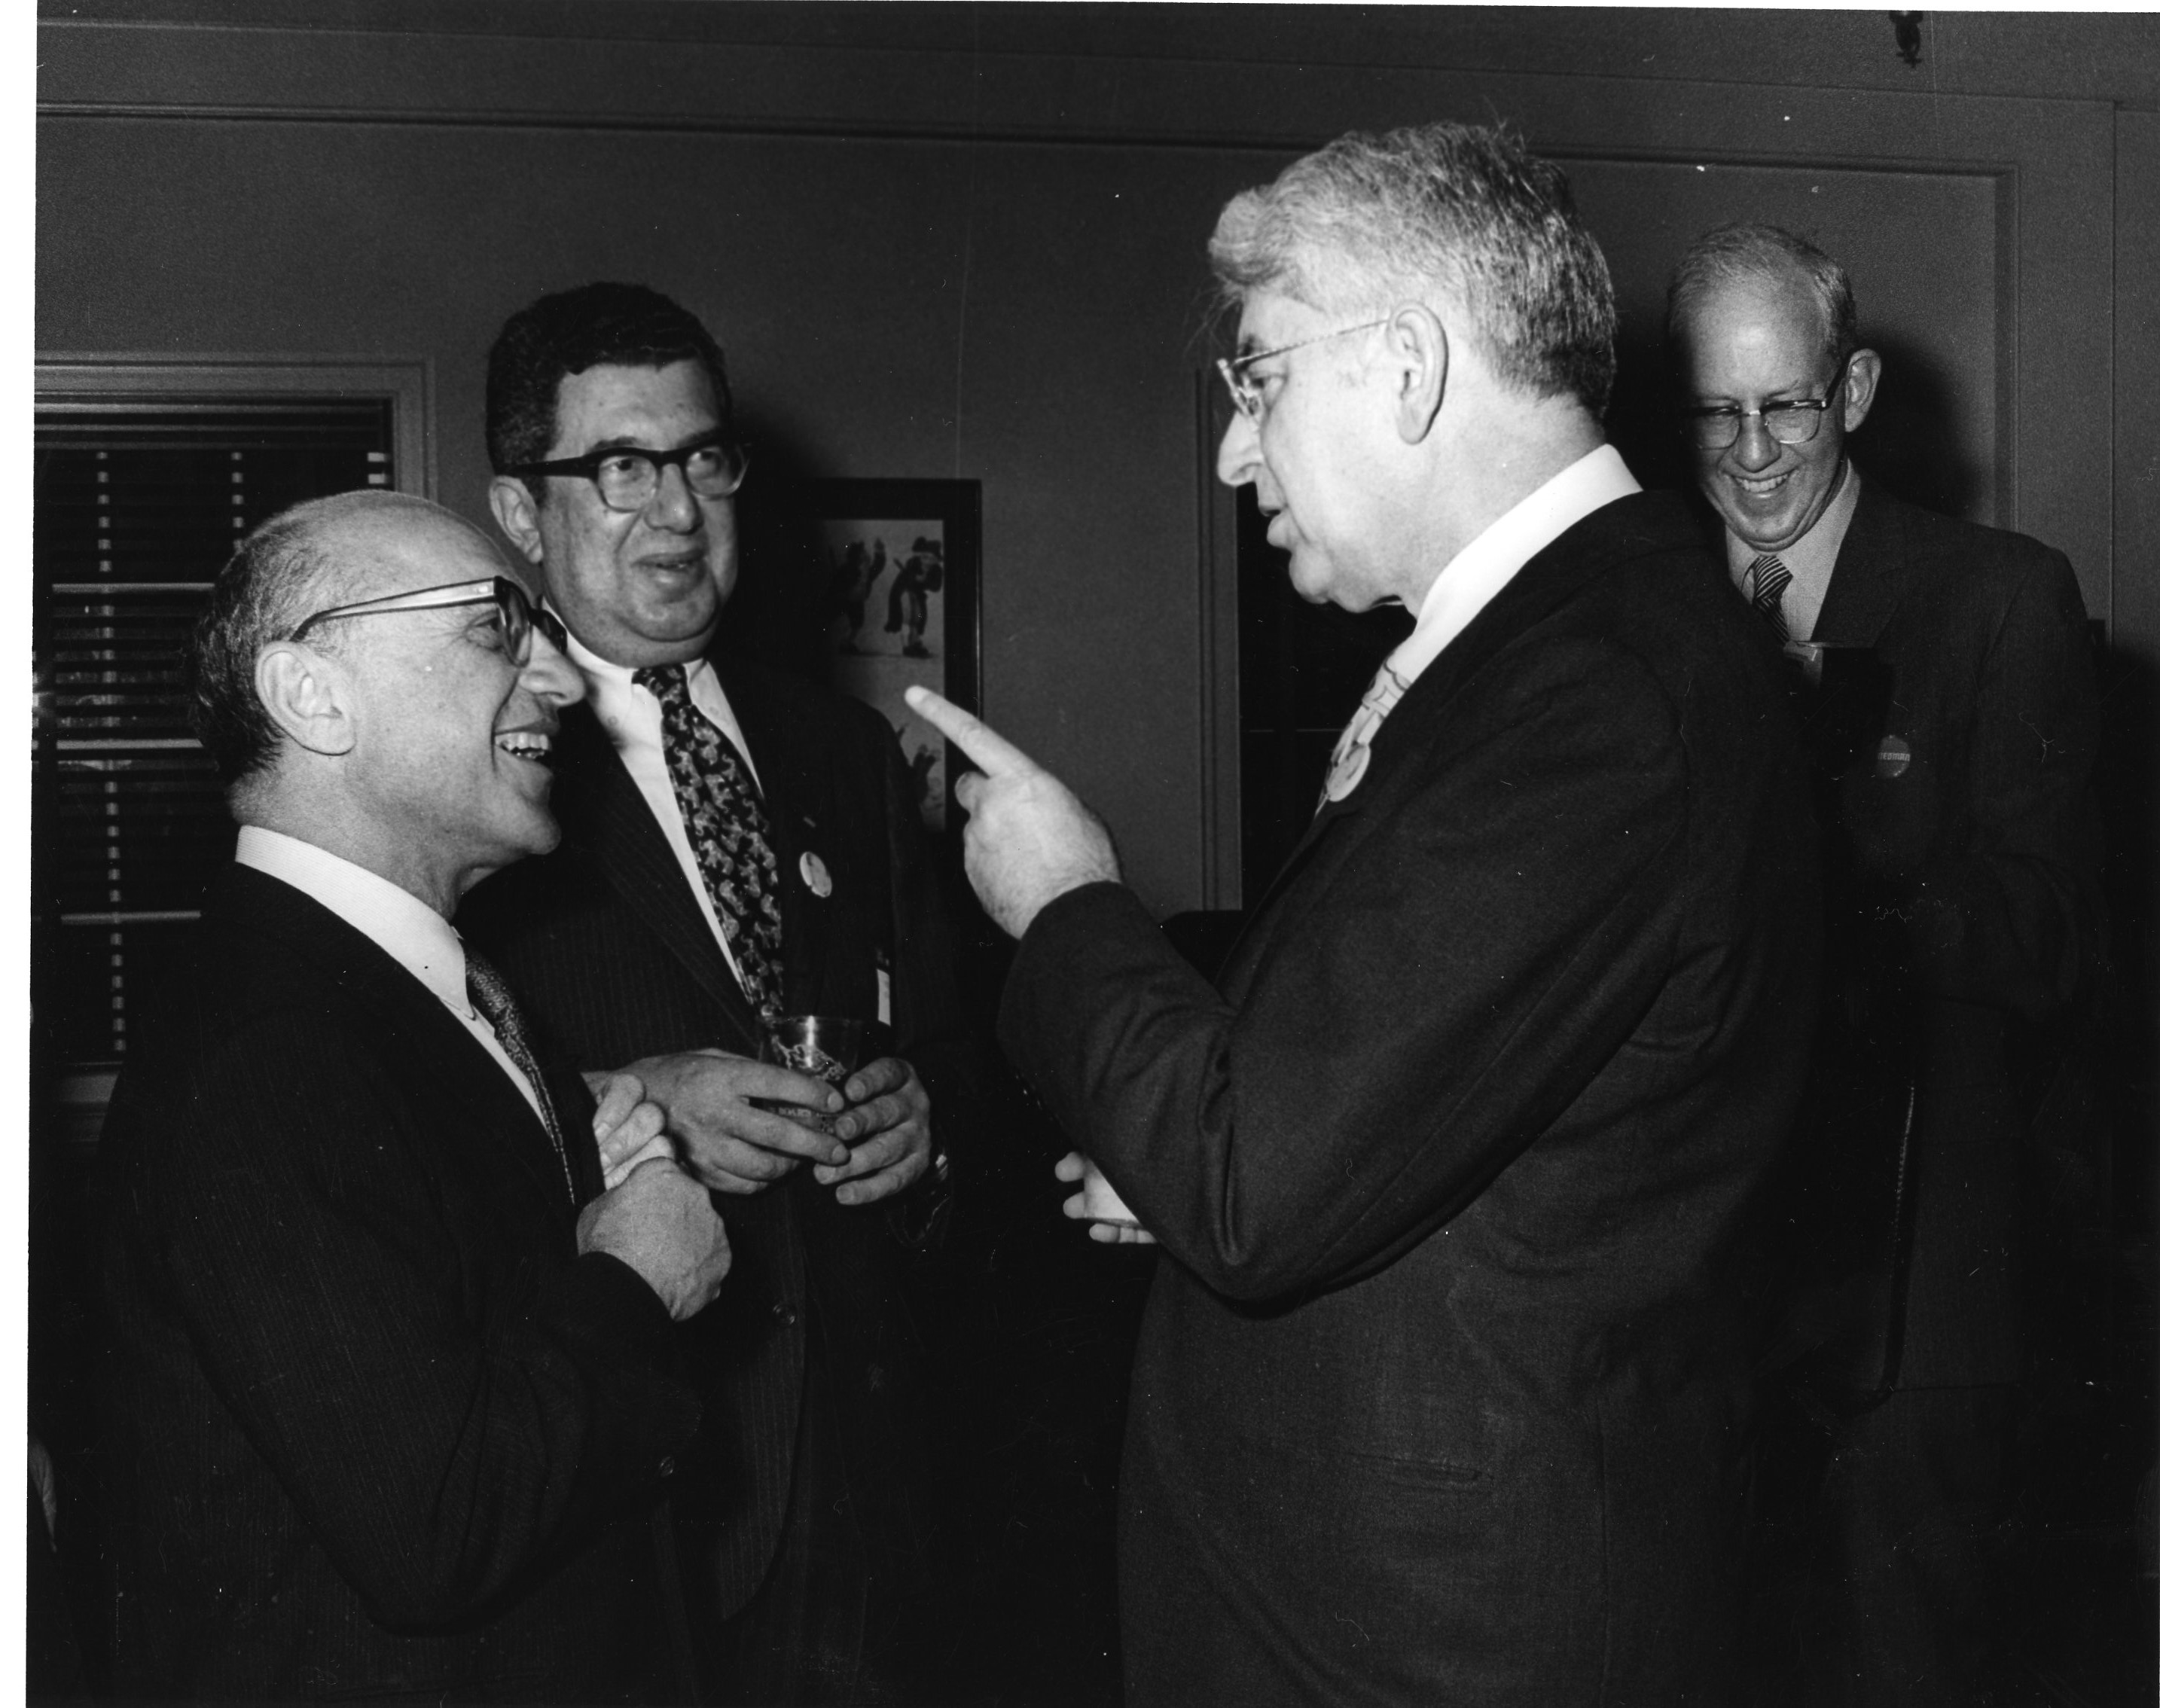 sims duke edu author at the devil s tale img004 friedman